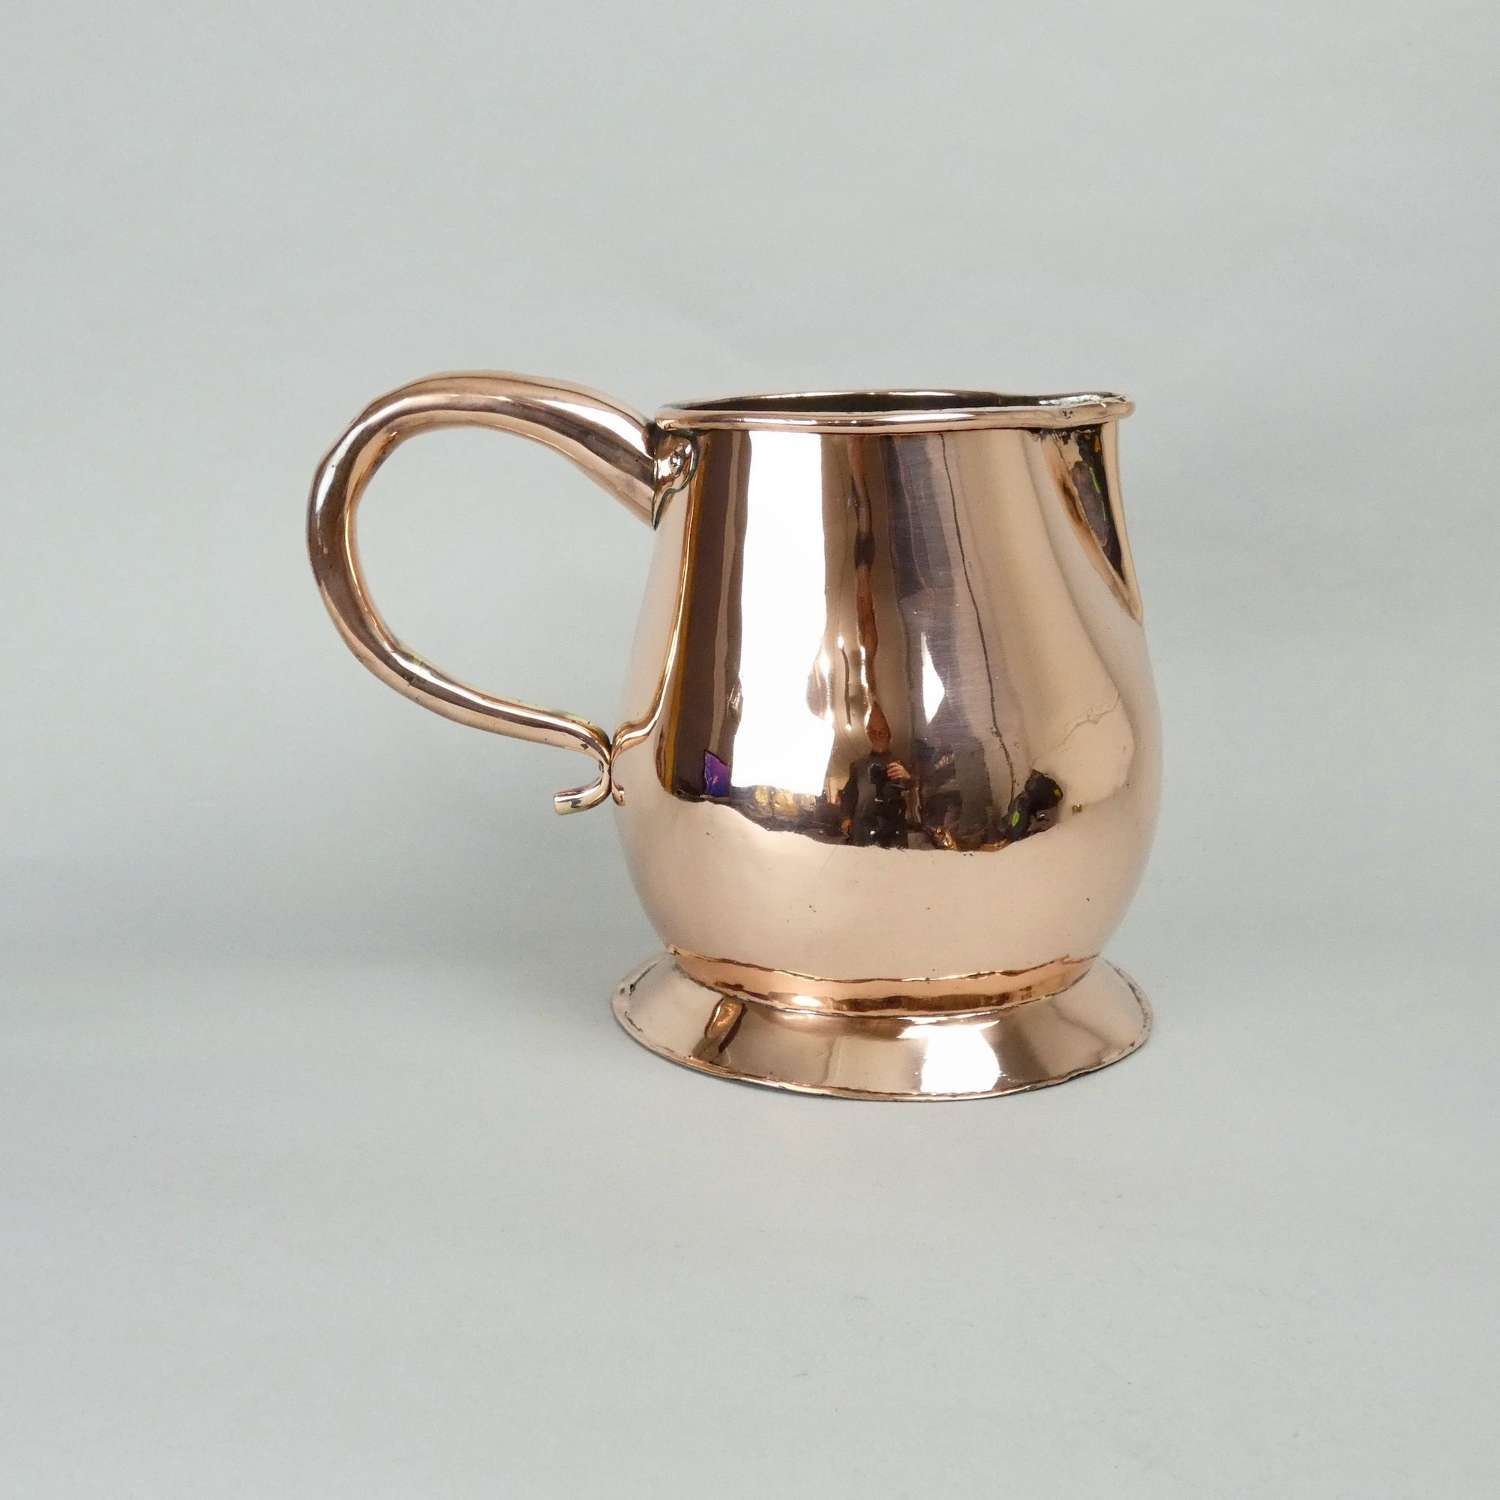 Early 19th cent. copper ale jug